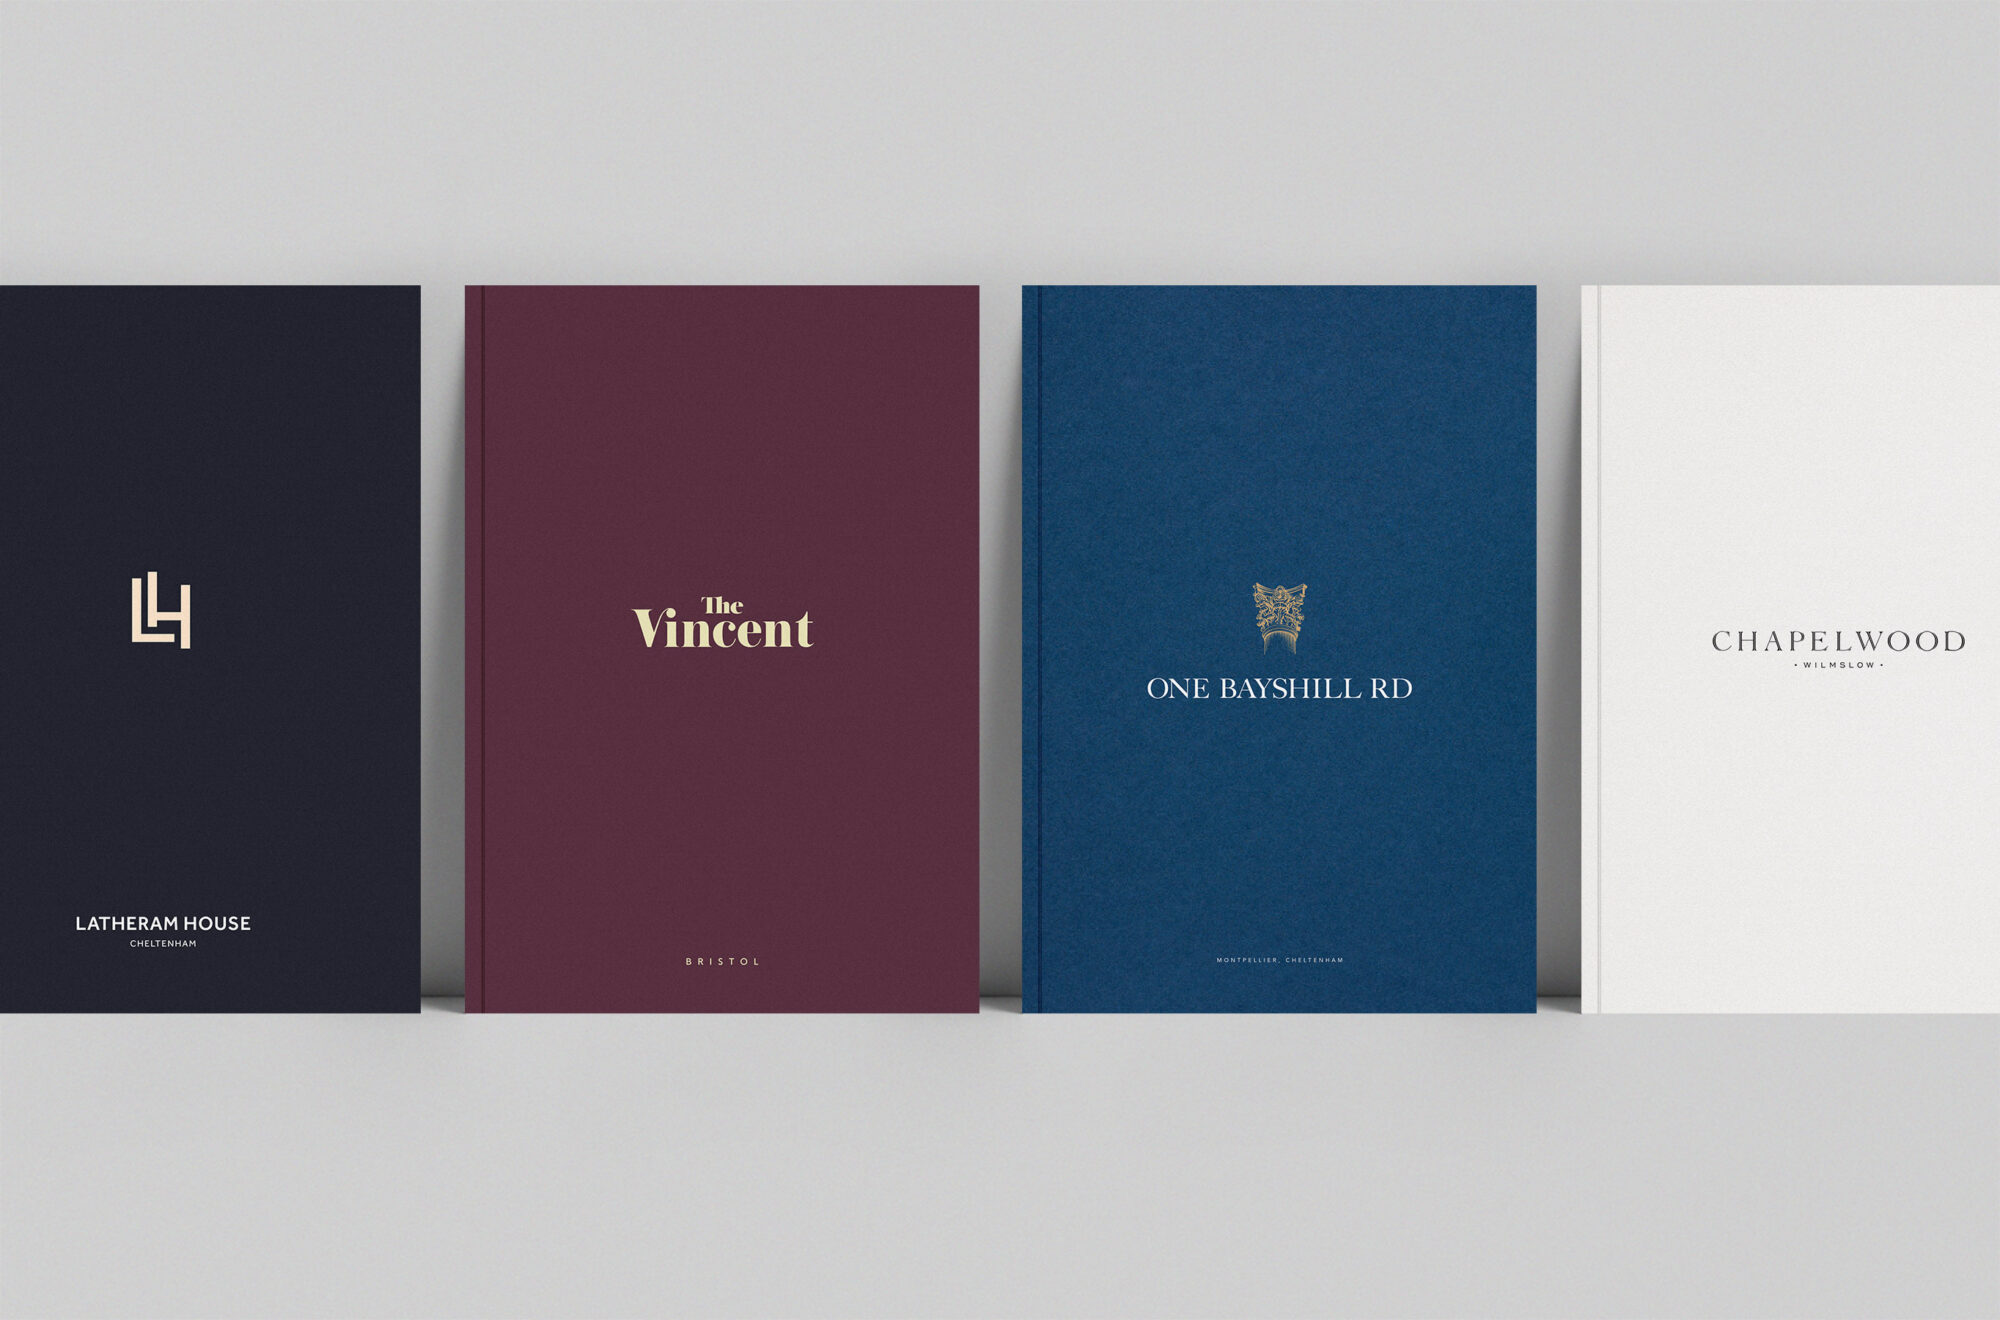 Lifestory brochure covers latheram house, the vincent, one bayshill